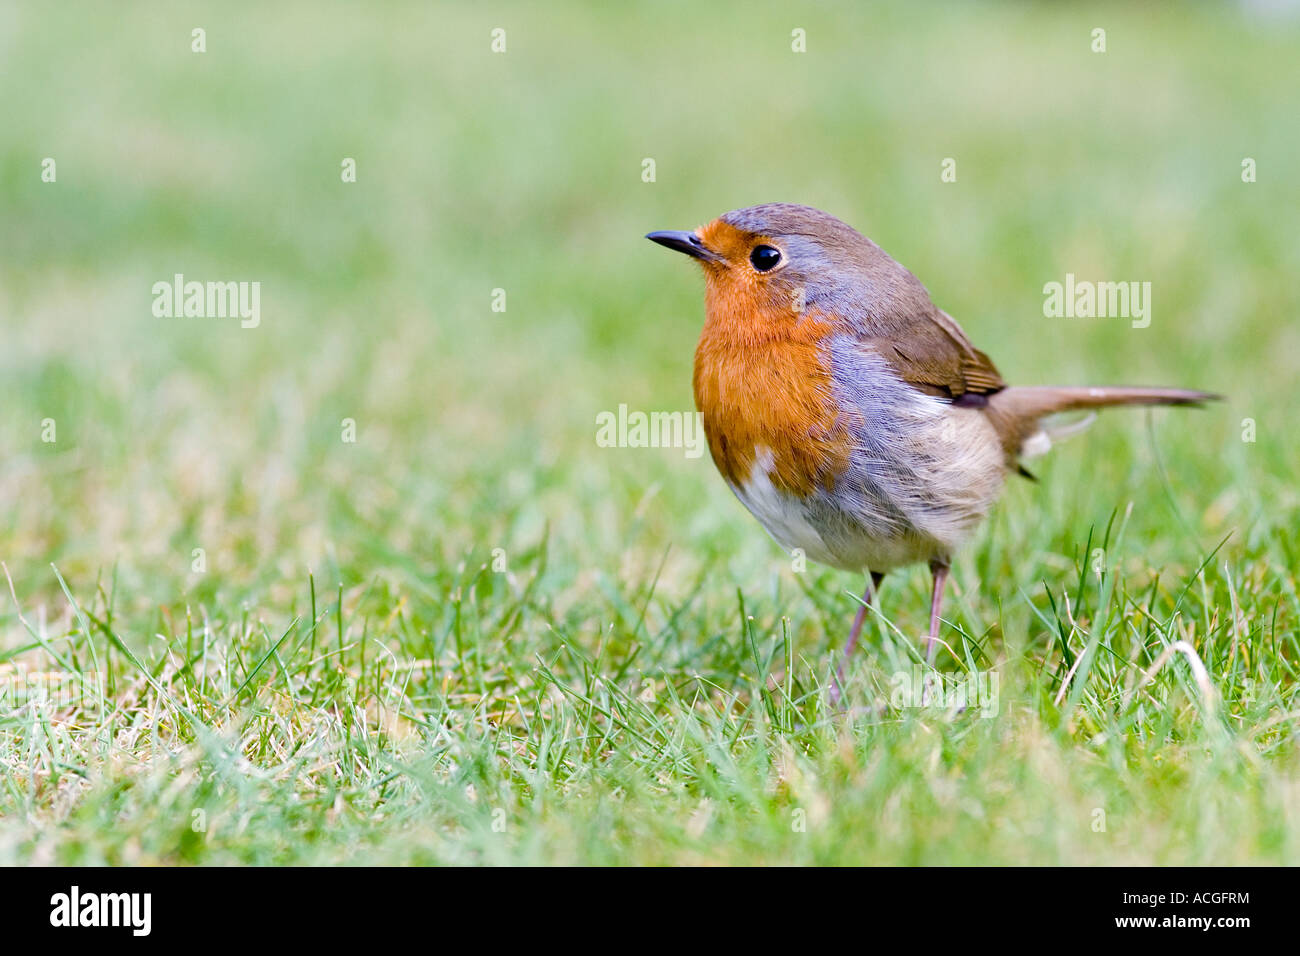 Robin redbreast on a lawn in an English garden - Stock Image